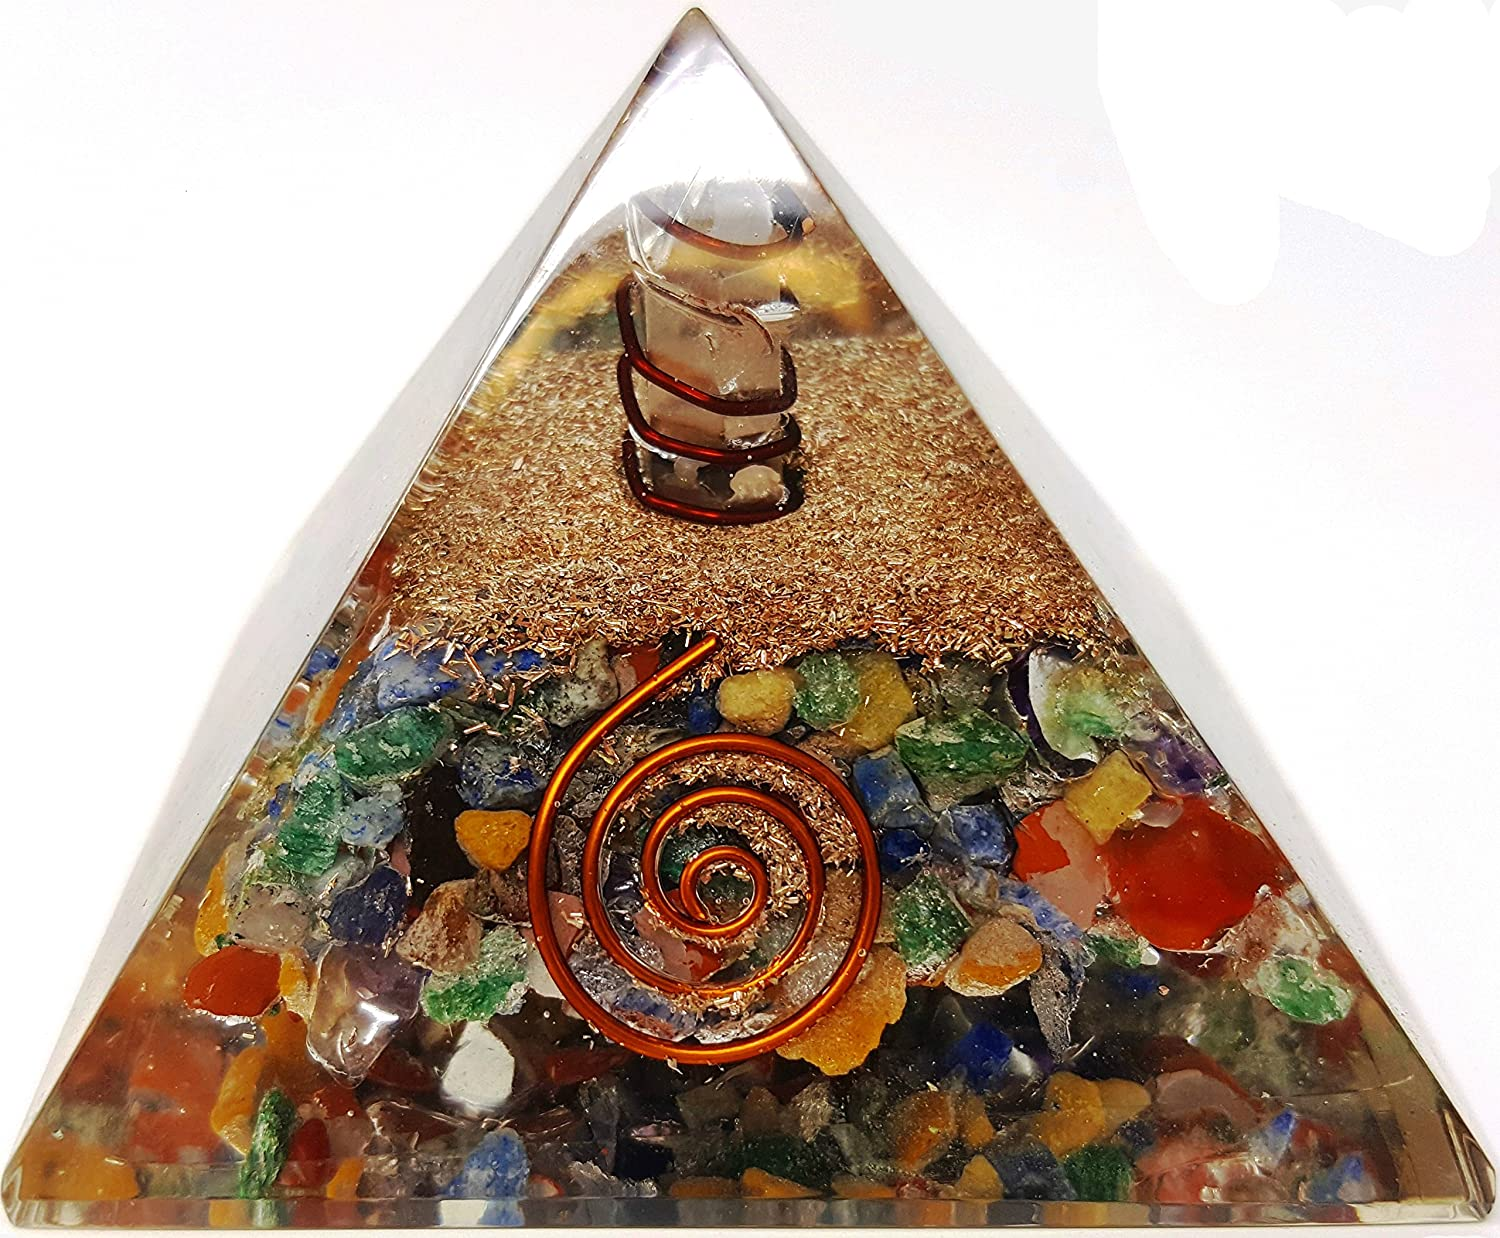 7 Chakra Crystal Orgone Pyramid Kit / Includes 4 Crystal Quartz Energy Points / EMF Protection Meditation Yoga Energy Generator People Crystals THUSHK285